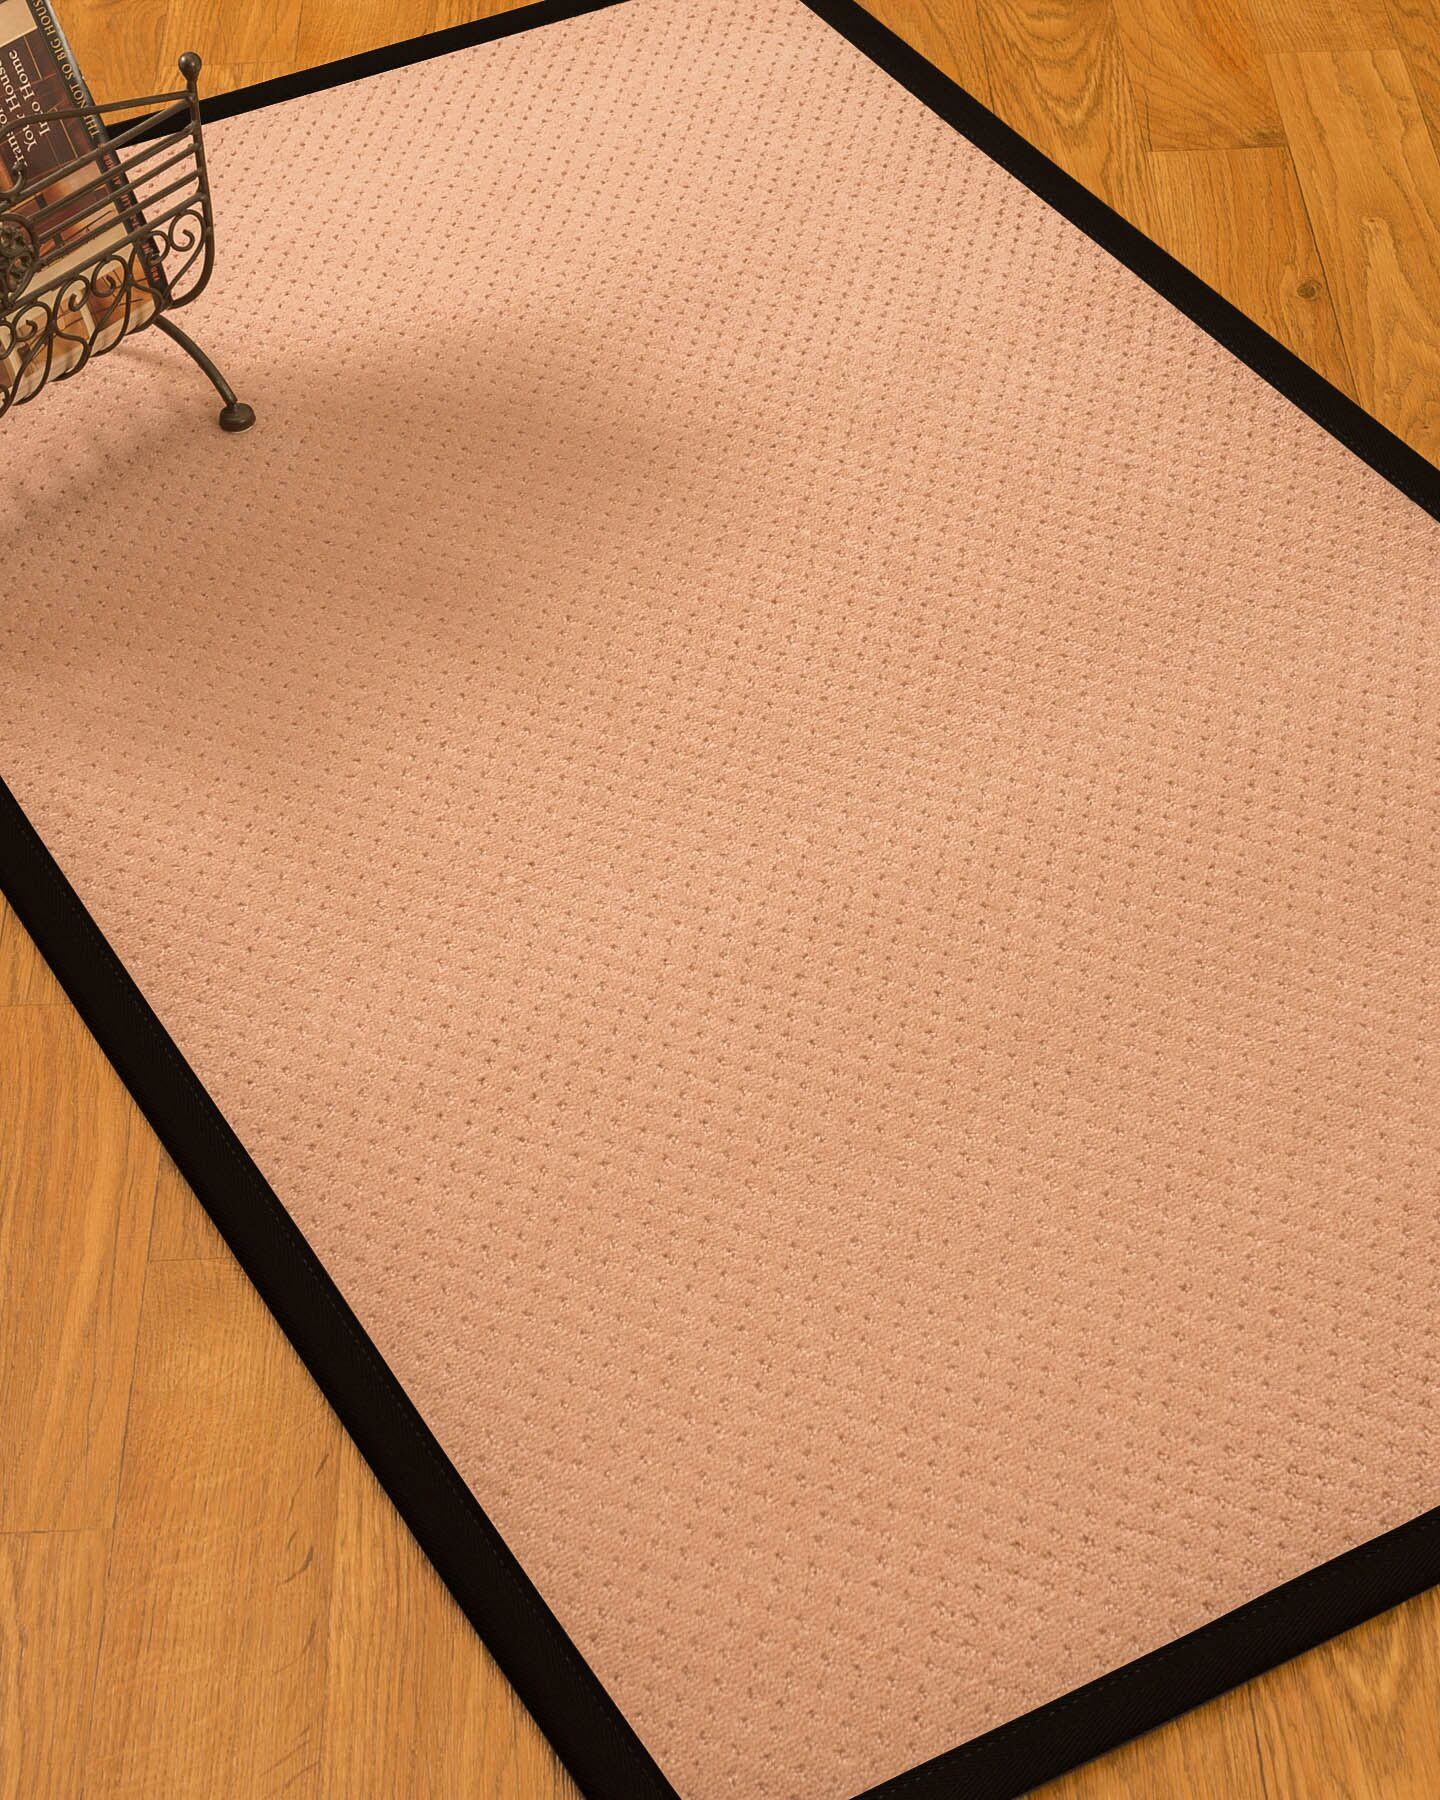 Farnham Border Hand-Woven Wool Pink/Black Area Rug Rug Size: Rectangle 8' x 10', Rug Pad Included: Yes